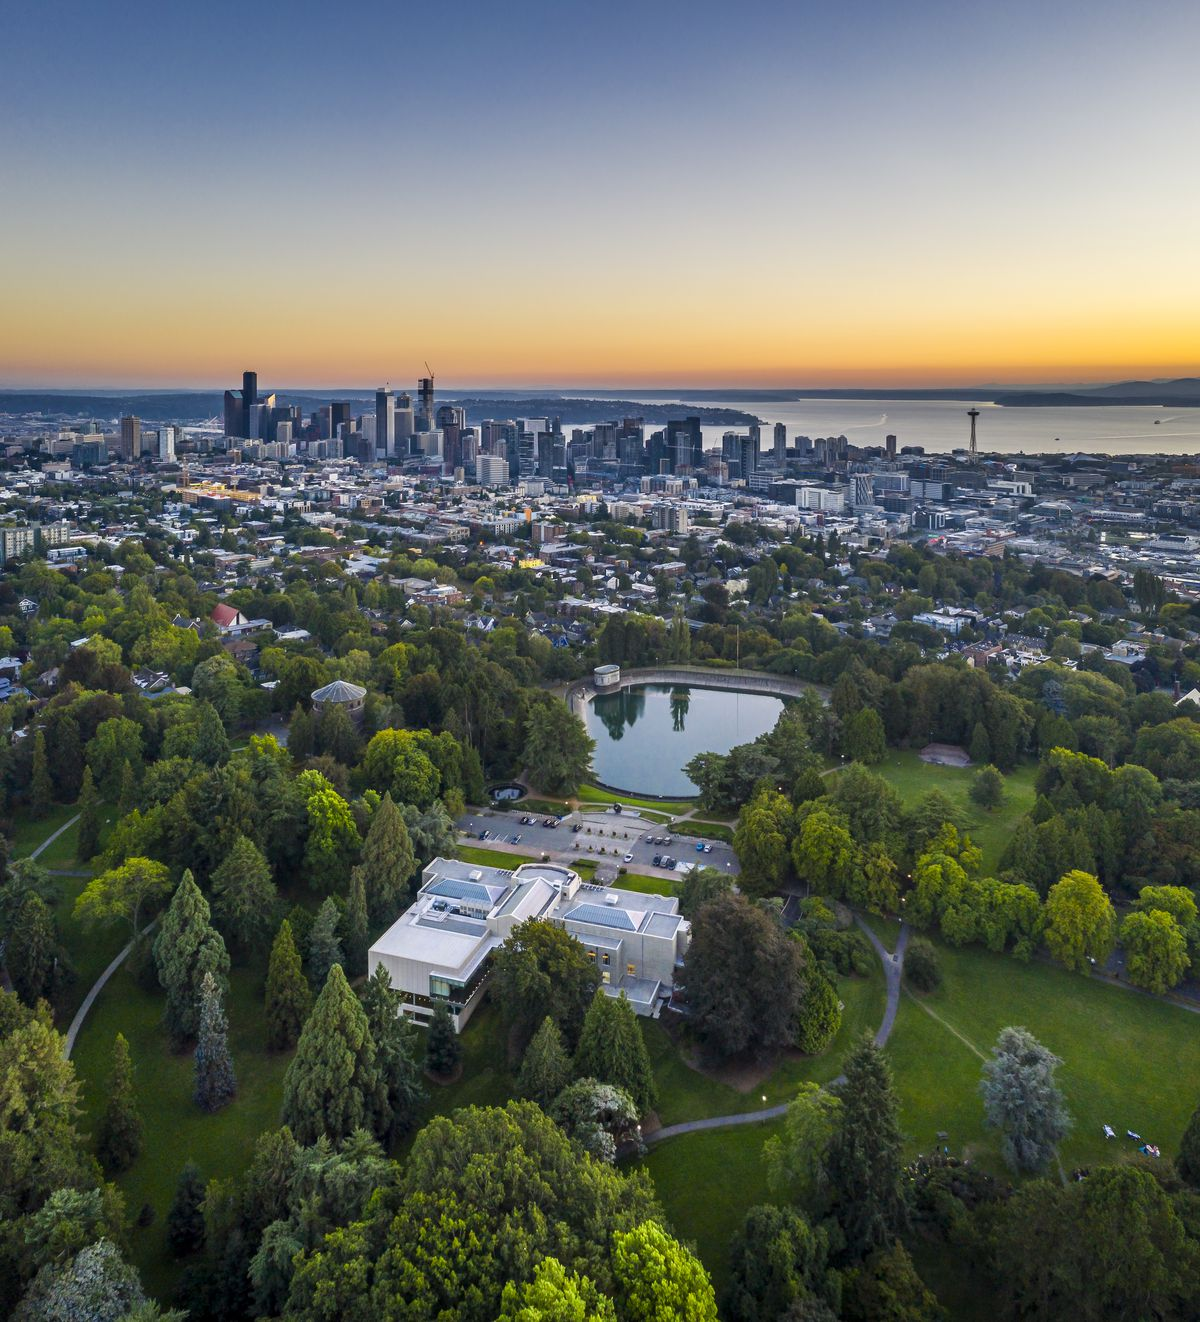 An aerial photograph of a park at sunset. In the middle of many trees, there's a top of a building that combines older (forward) and newer (toward the camera) construction. There's a large reservoir in front of it and tall buildings in the background.